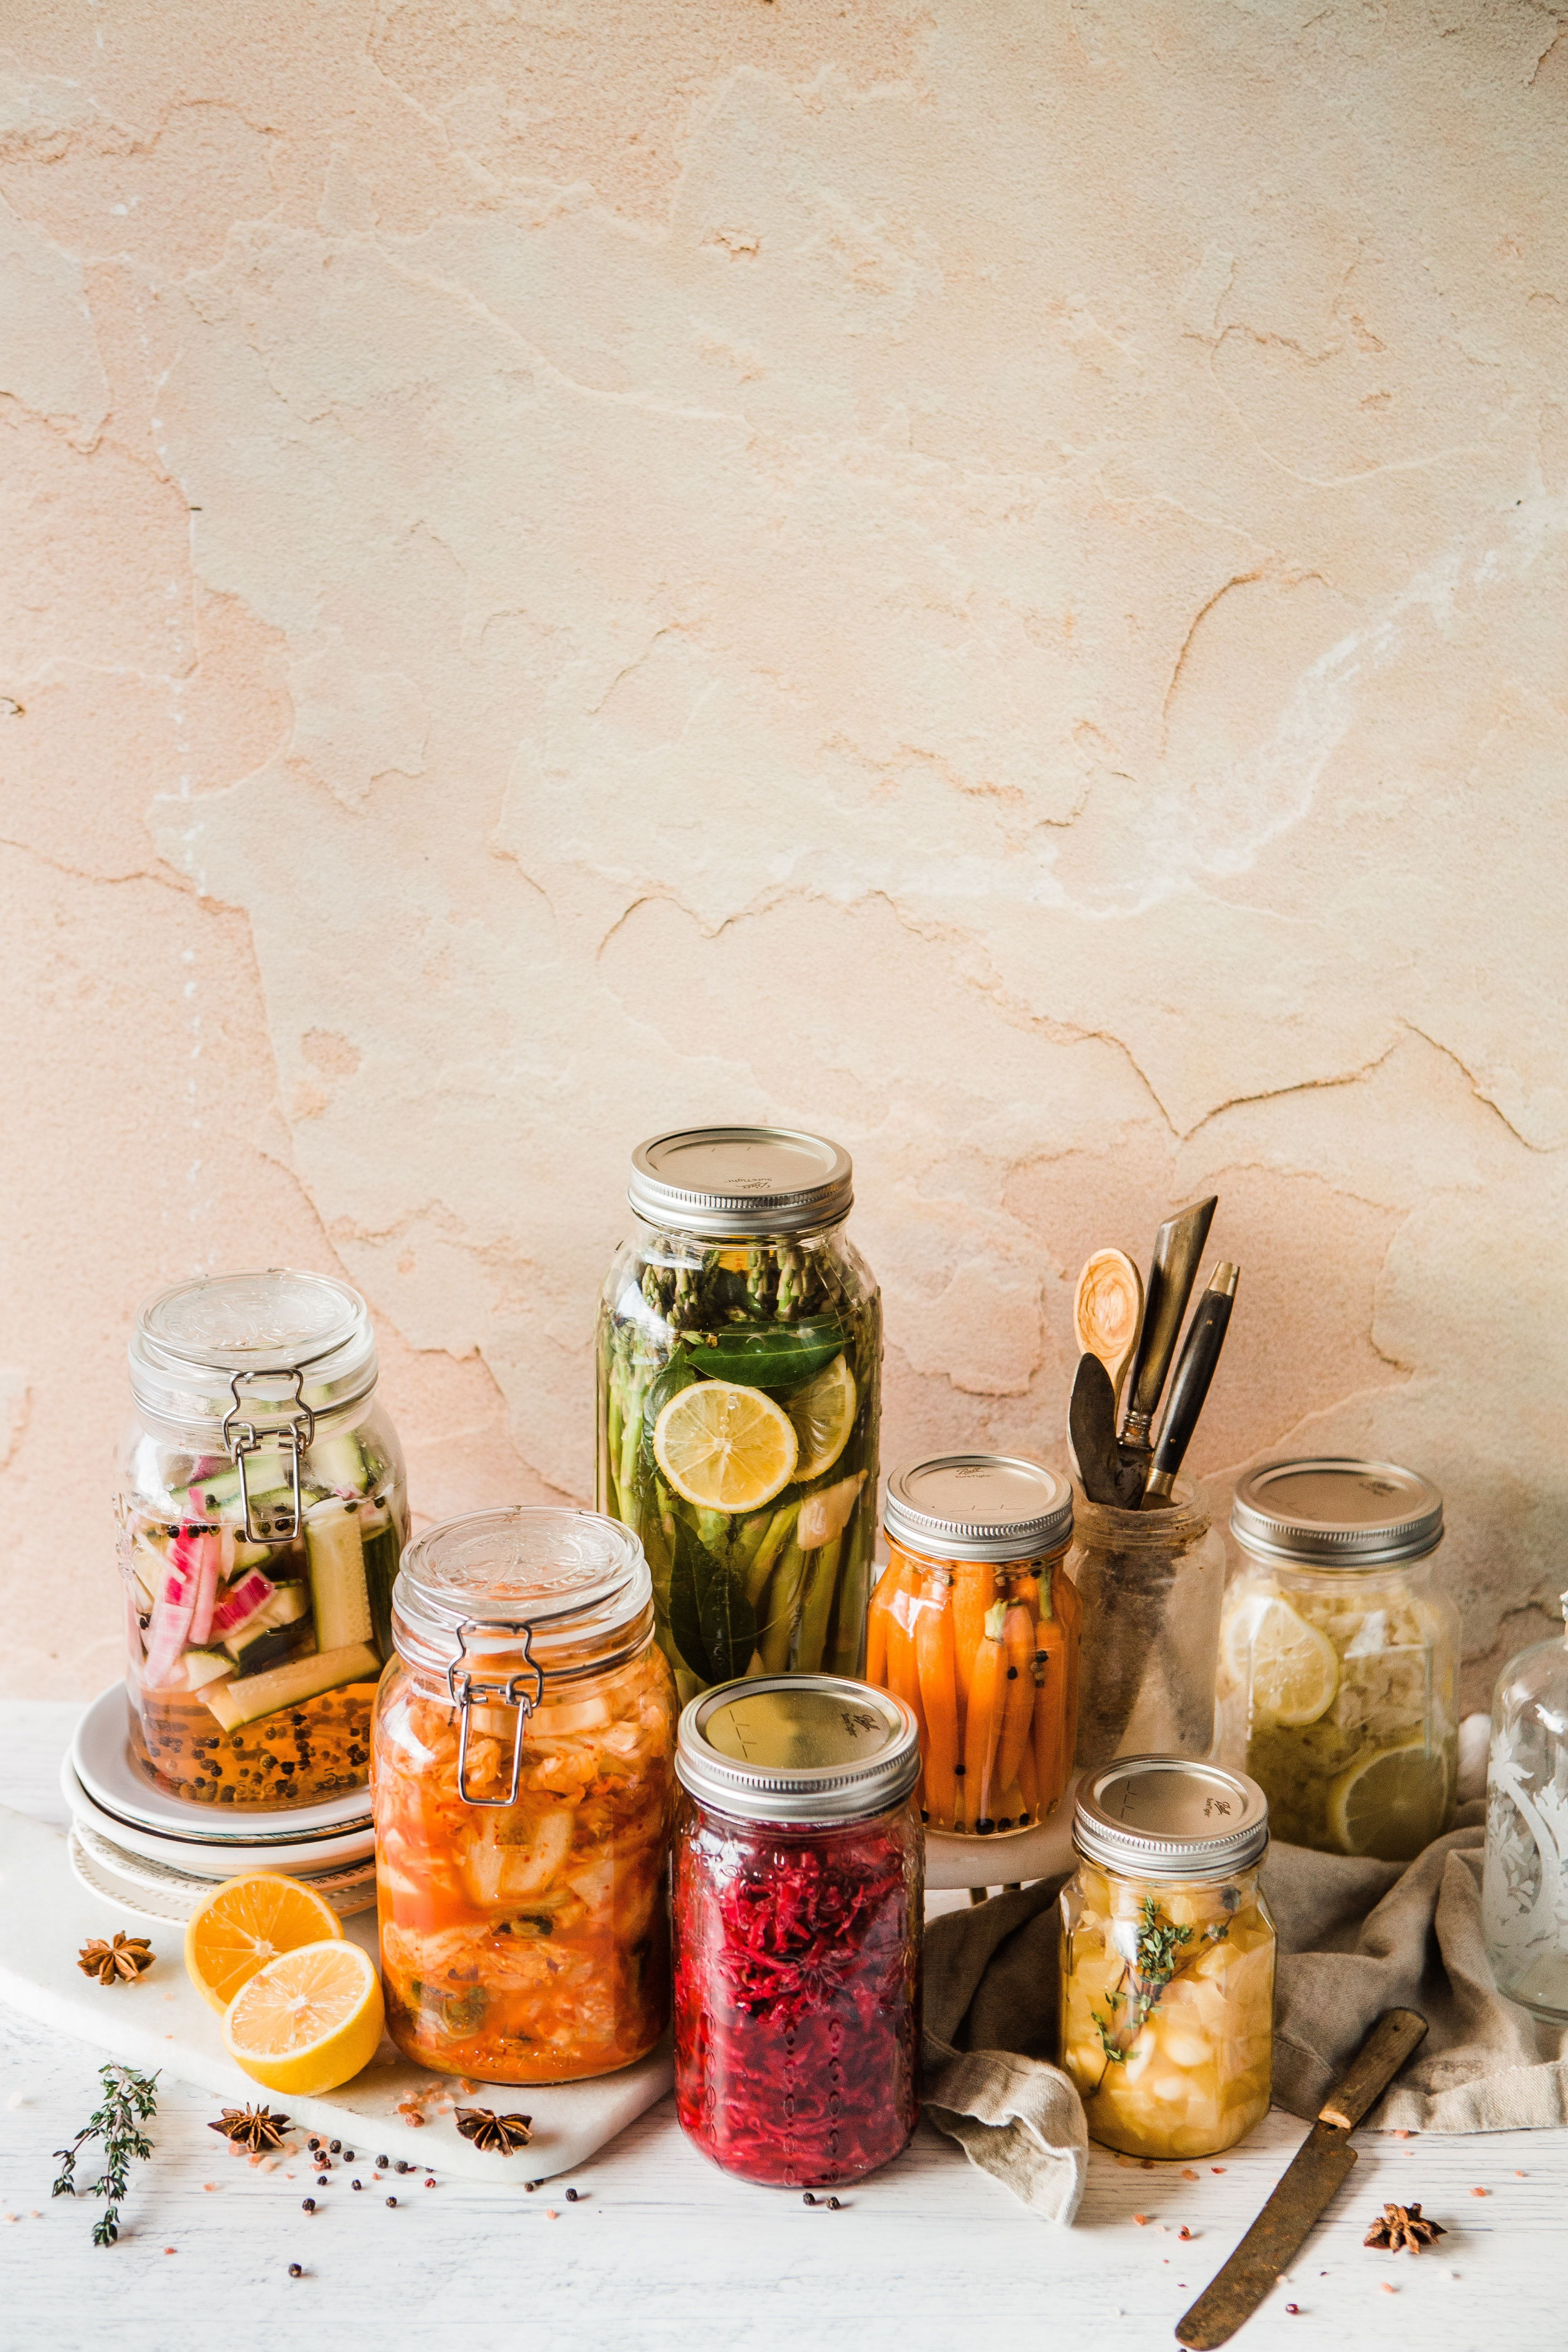 Fermentation jars brooke lark kwap8ybrpwk unsplash